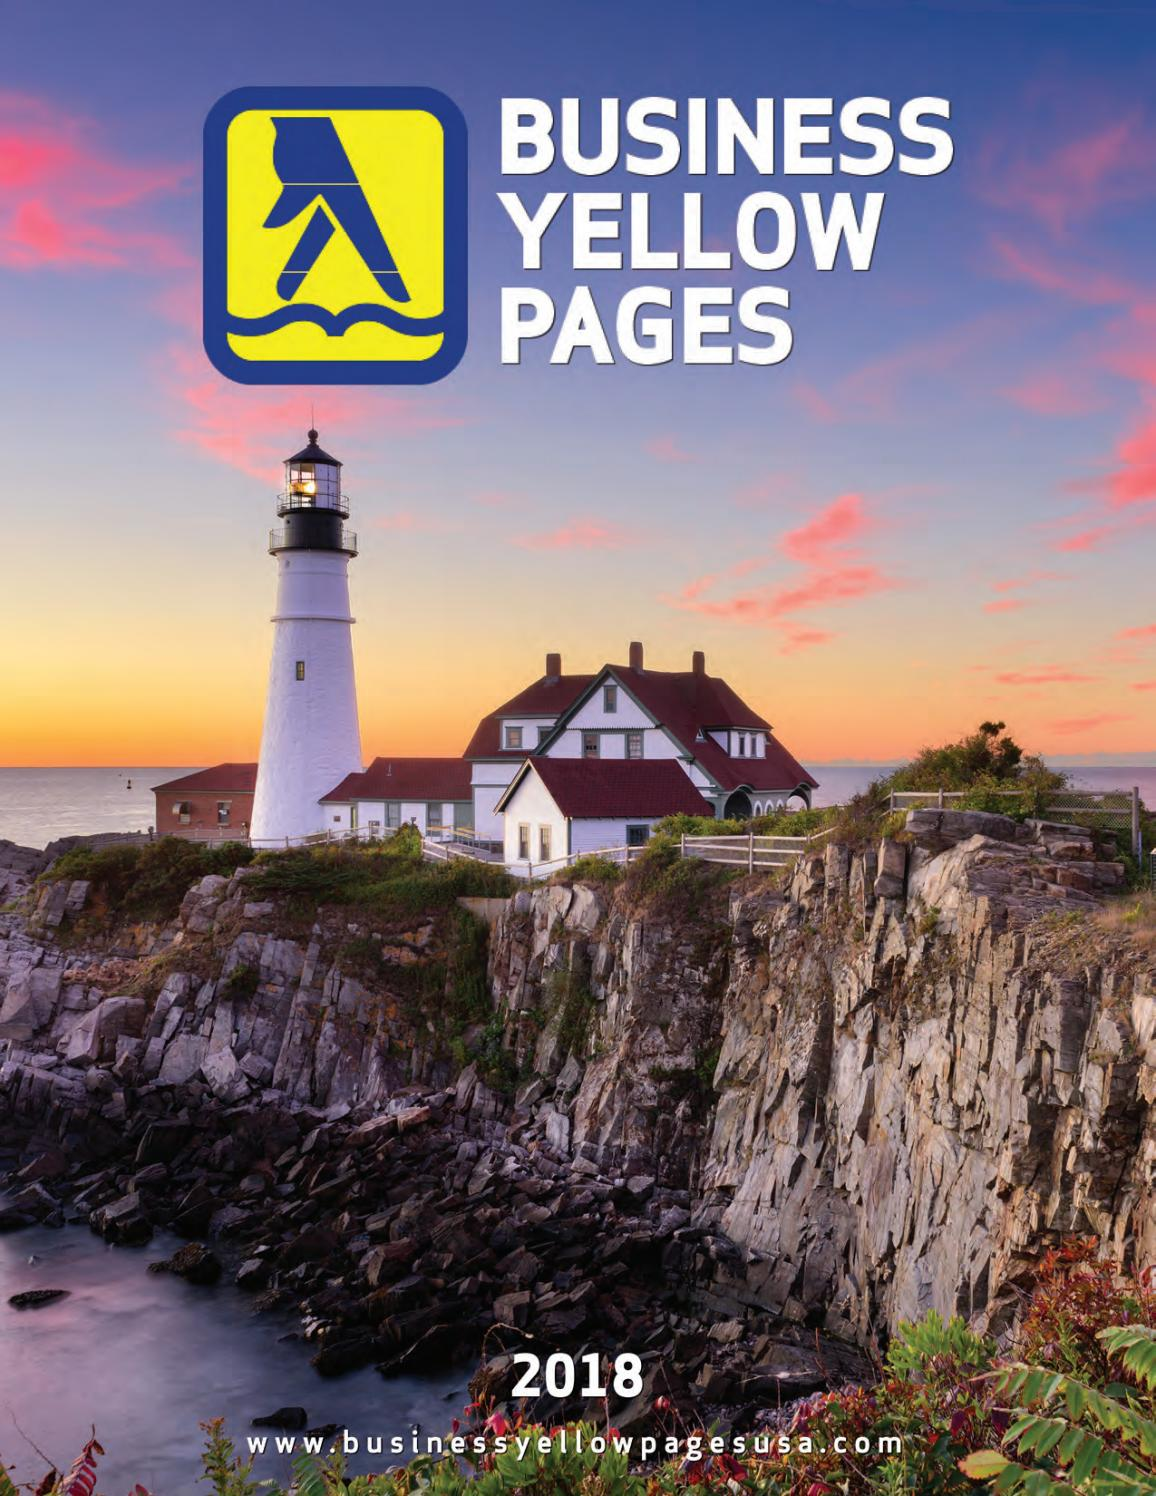 Business Yellow Pages USA 2018 by El Periodico U S A  - issuu